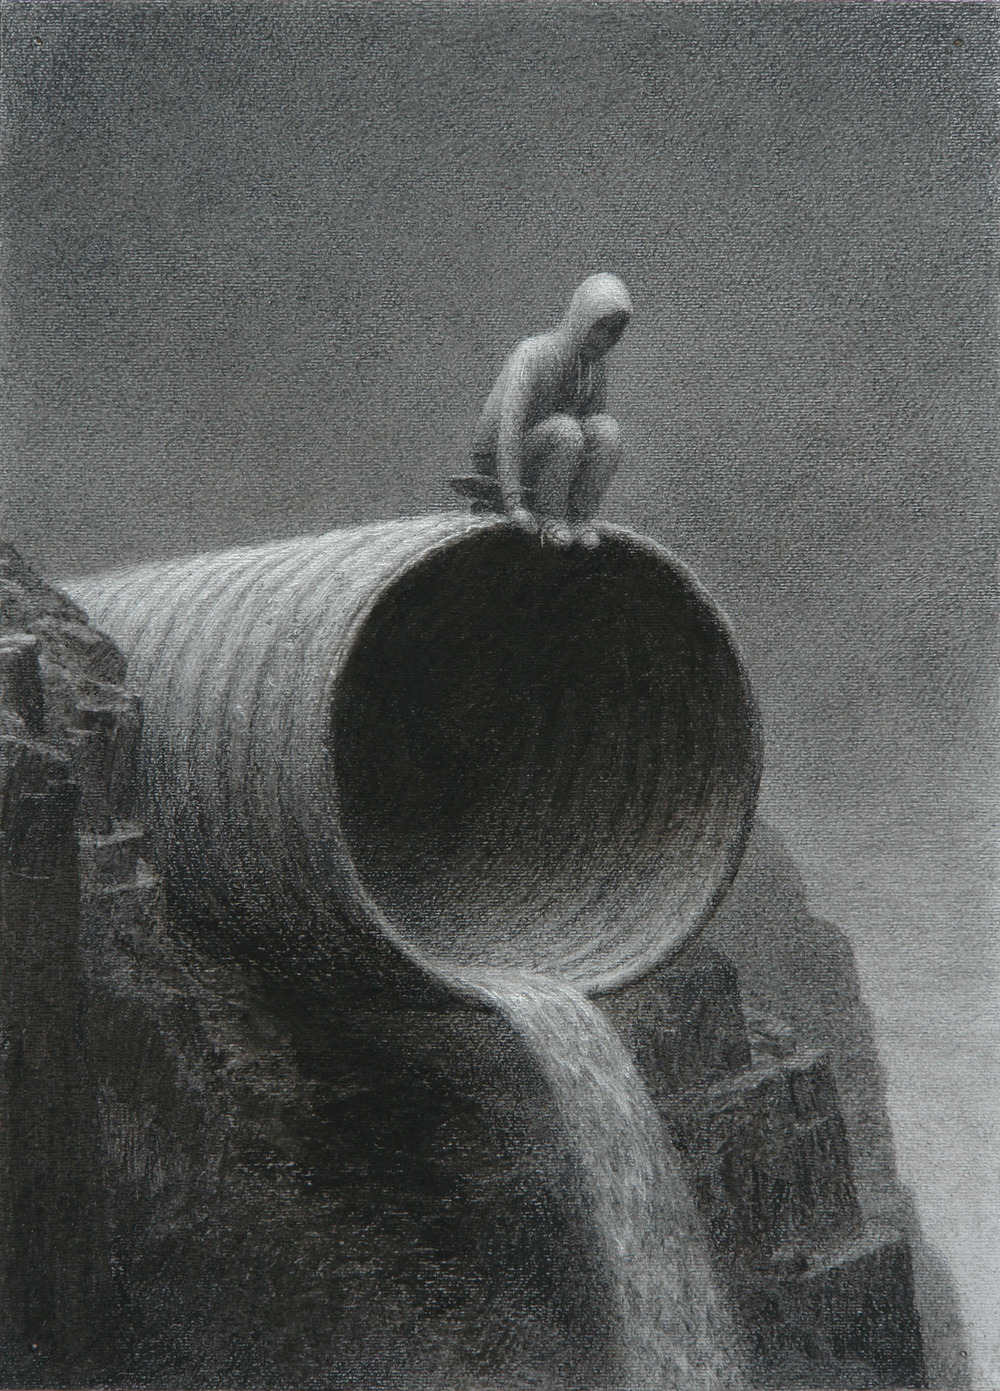 Drain Pipe , charcoal on paper, 14 x 11 in / 36 x 28 cm, 2010